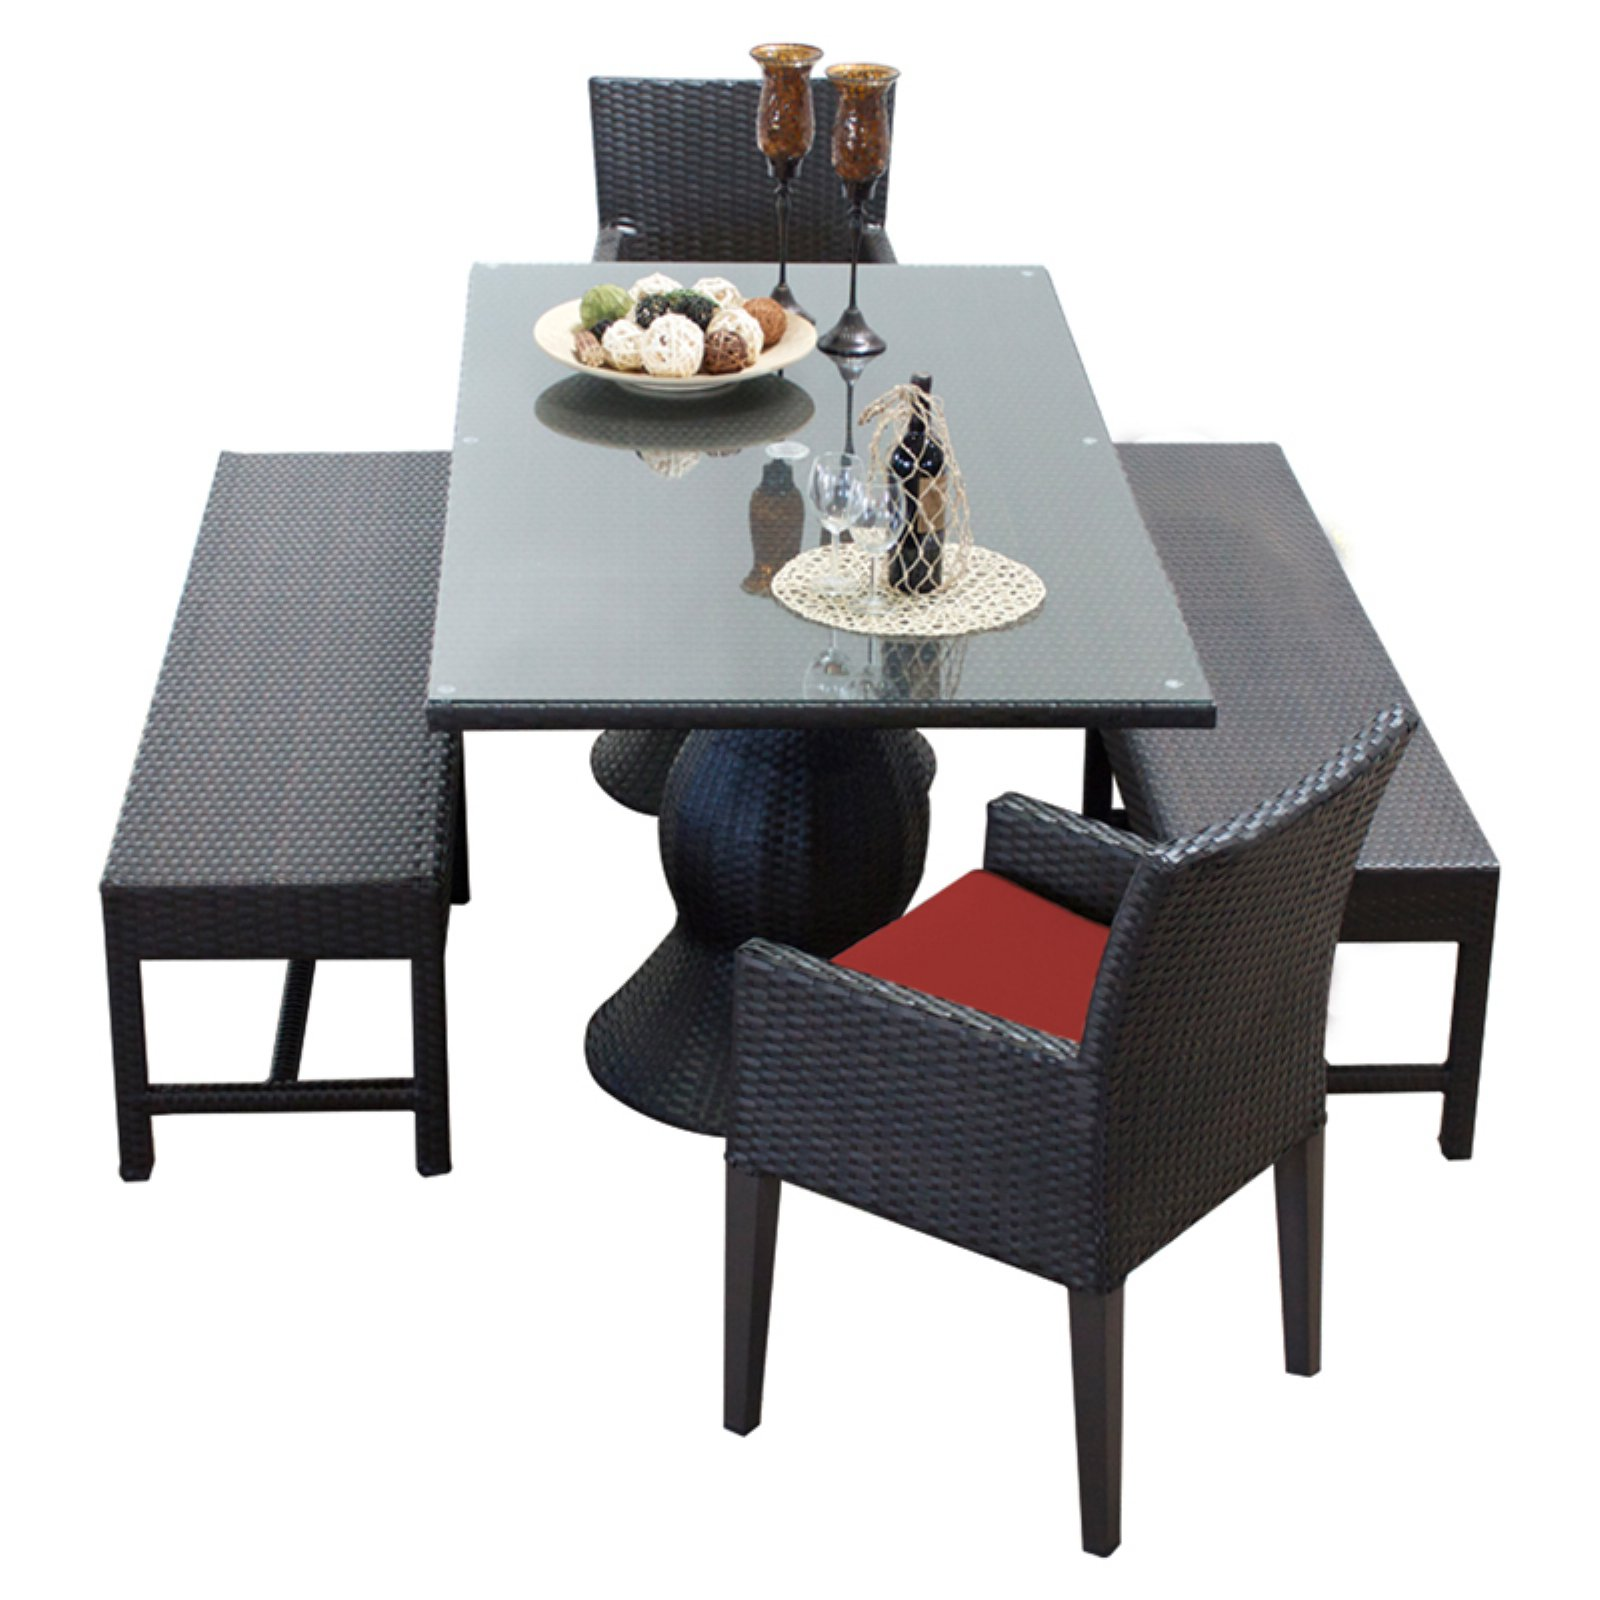 TK Classics Napa Wicker 5 Piece Rectangular Patio Dining Set with 4 Cushion Covers